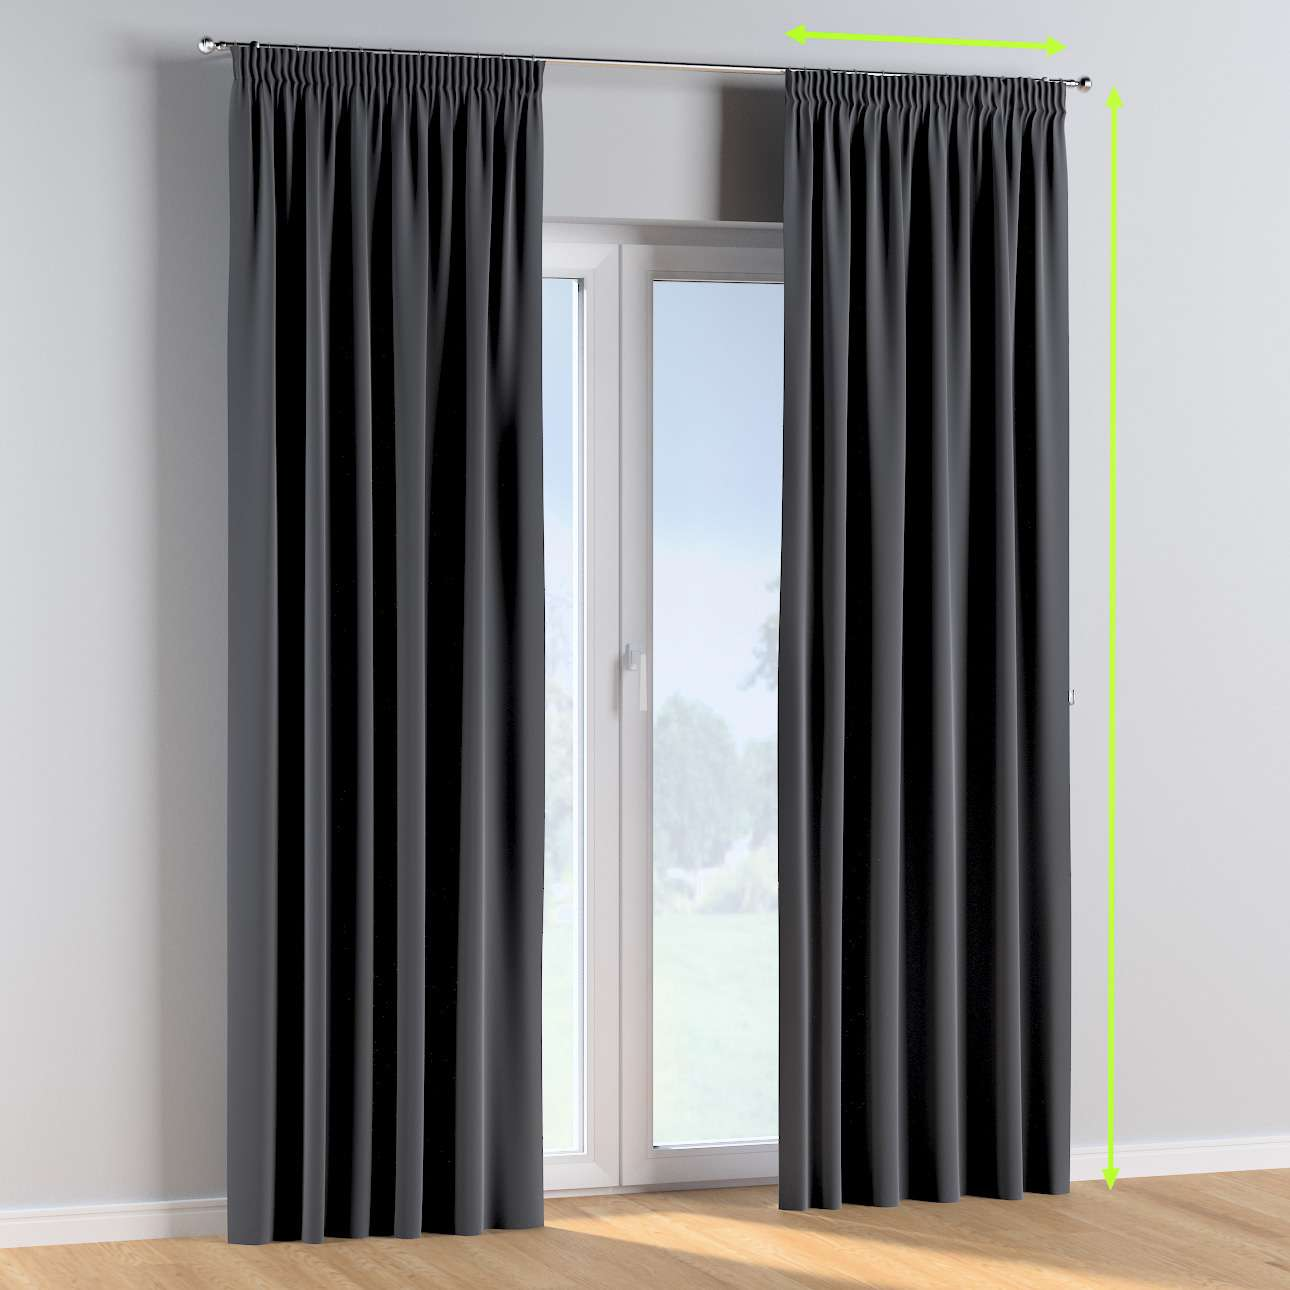 Pencil pleat curtains in collection Posh Velvet, fabric: 704-12